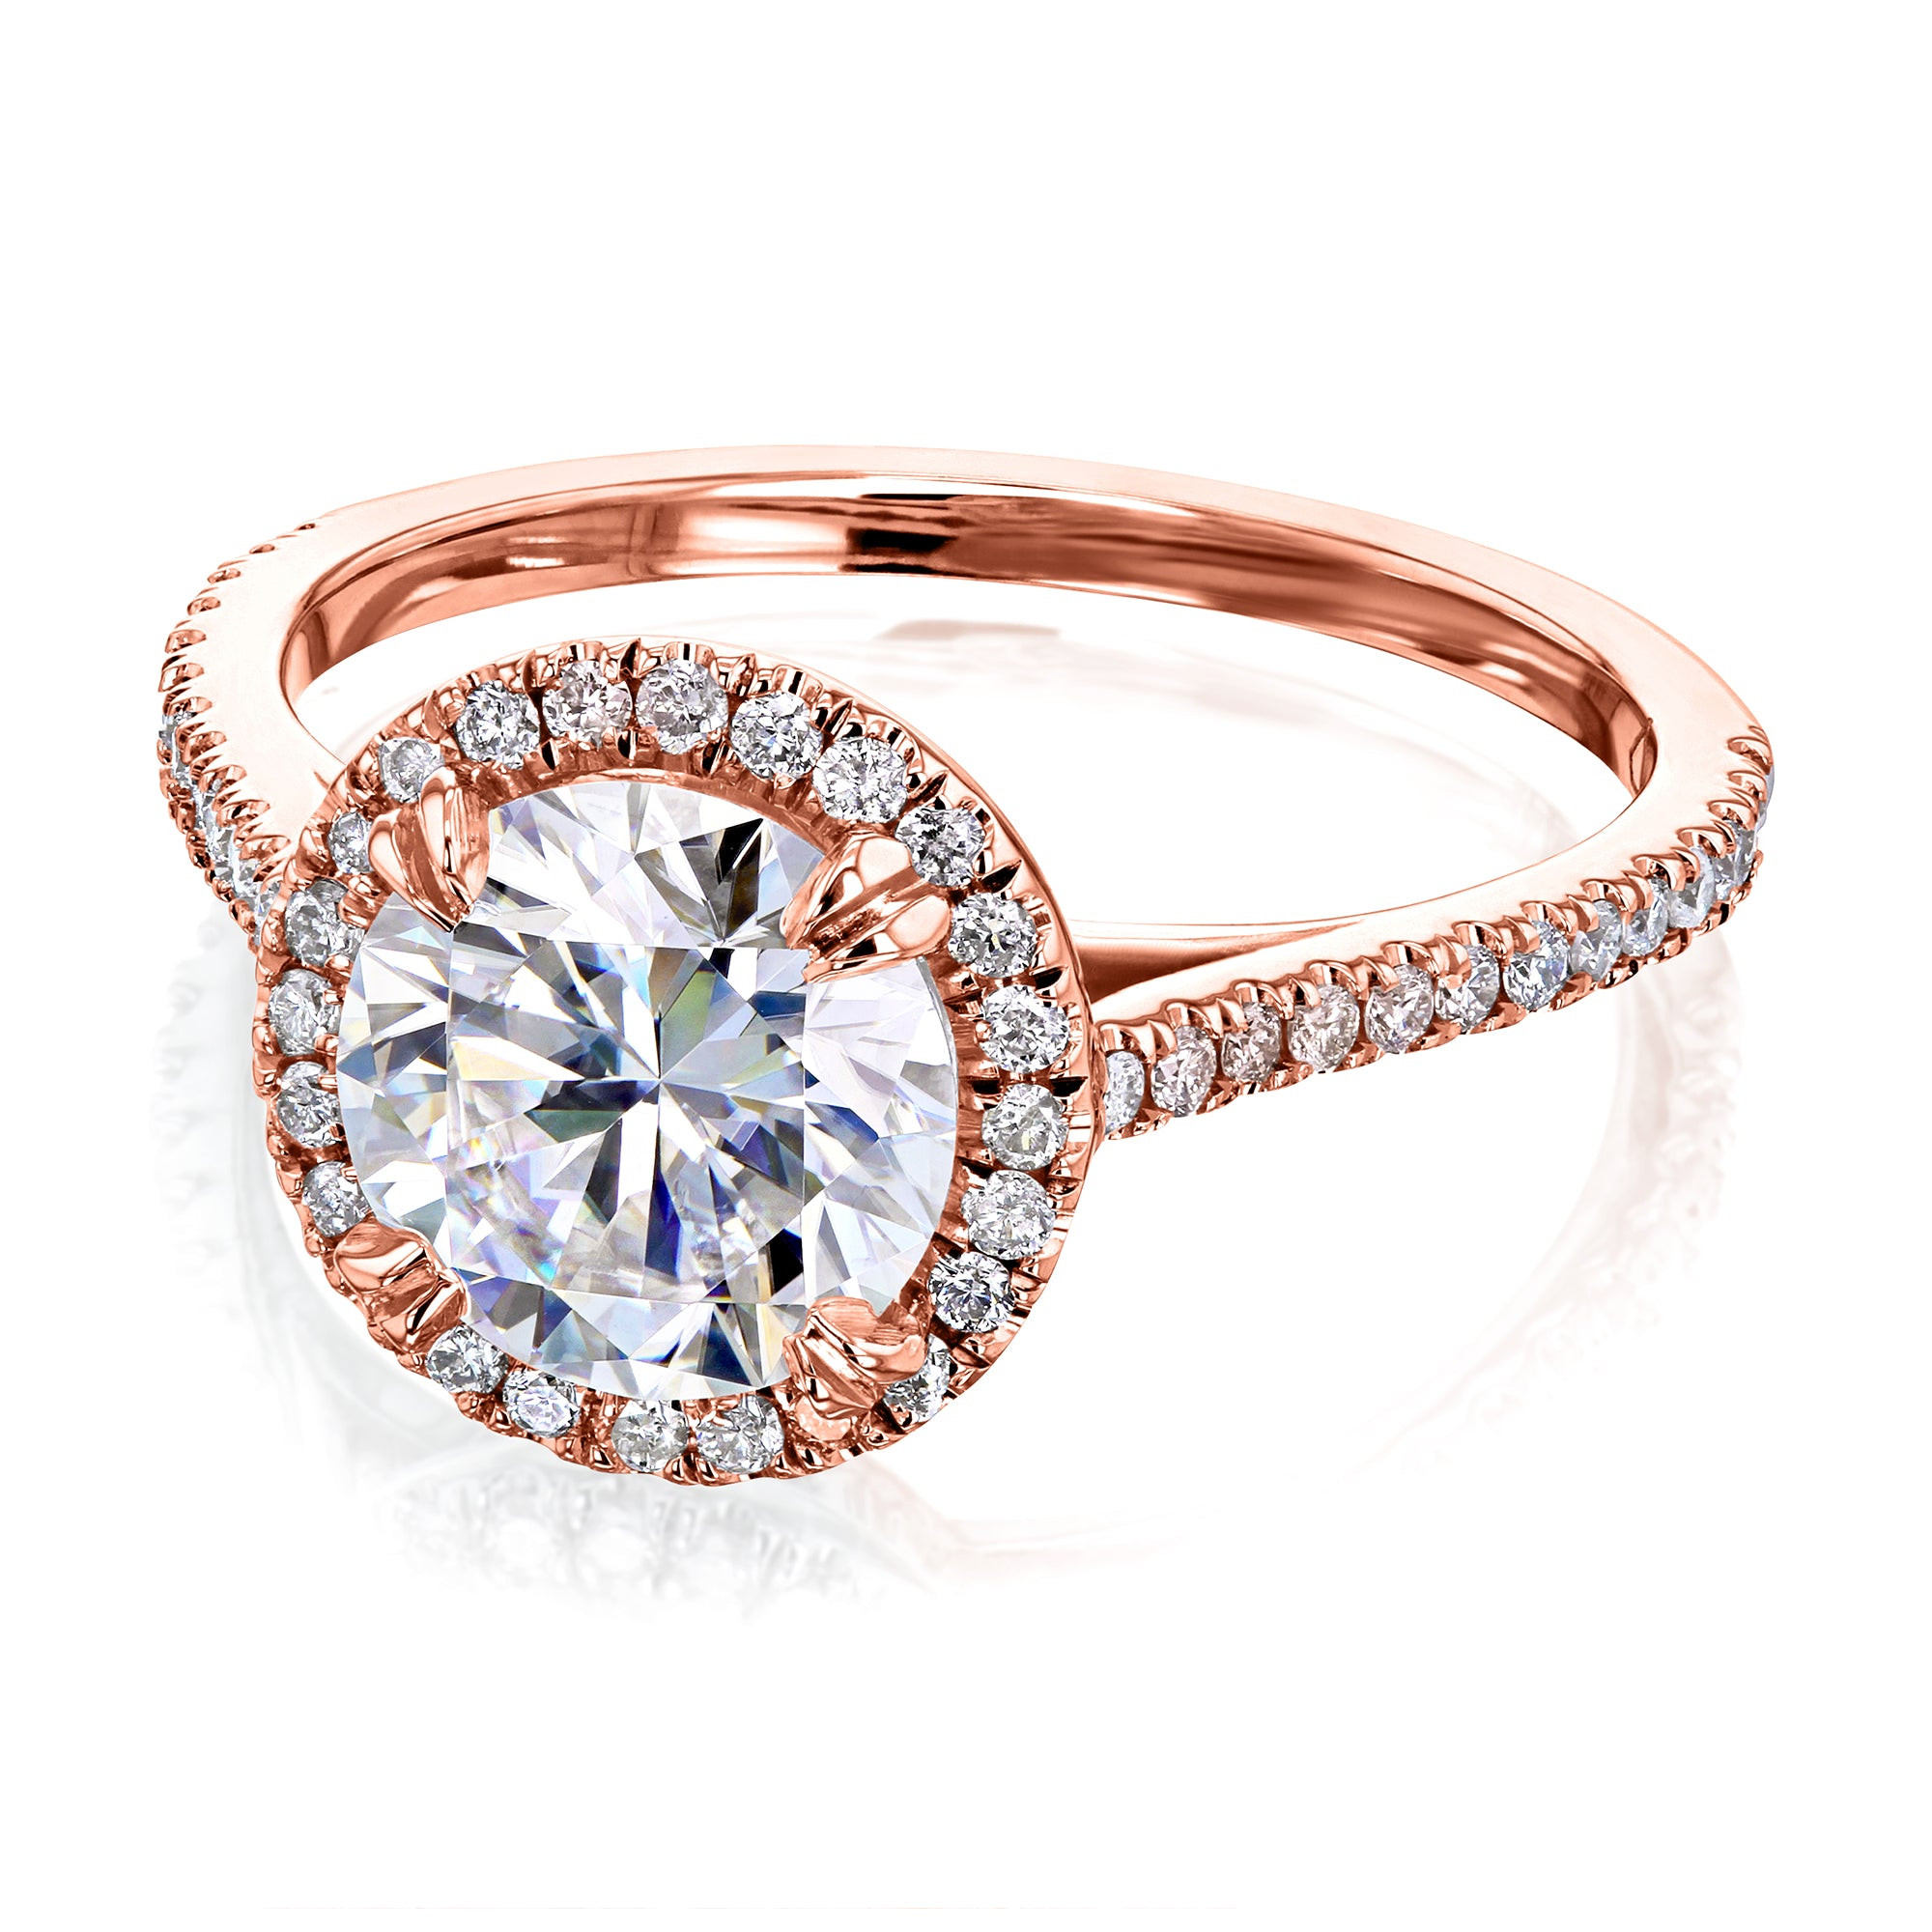 Top 1.5ct Round Moissanite Halo Ring - 4.5 Kobelli H-I rose-gold